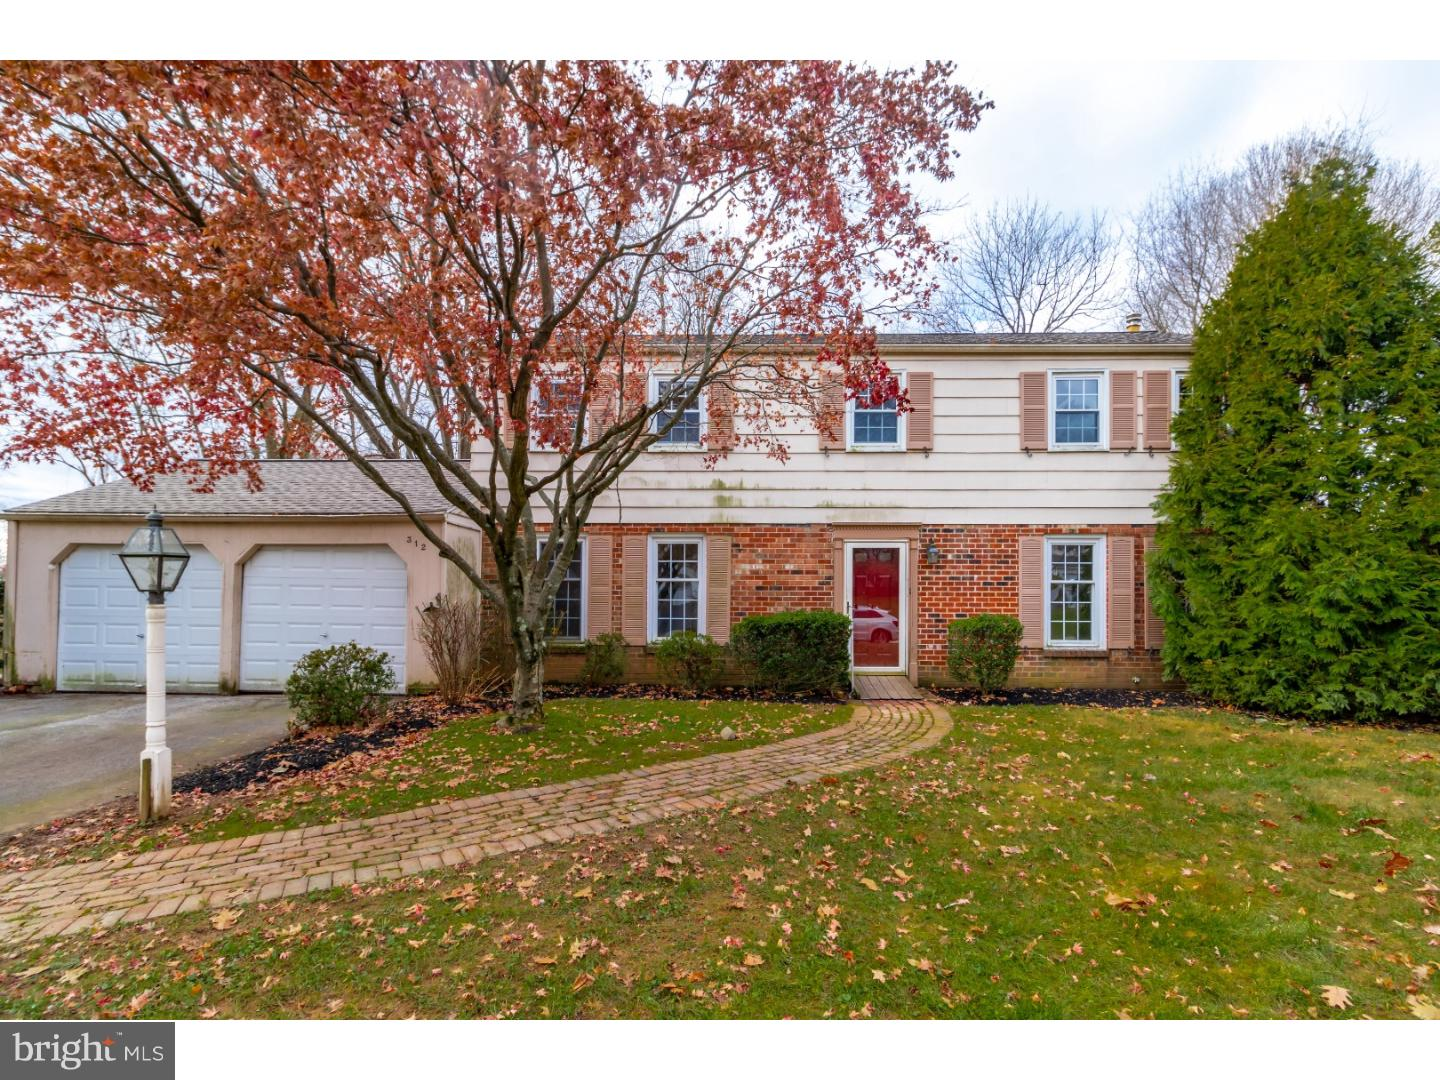 312 Box Elder West Chester, PA 19380